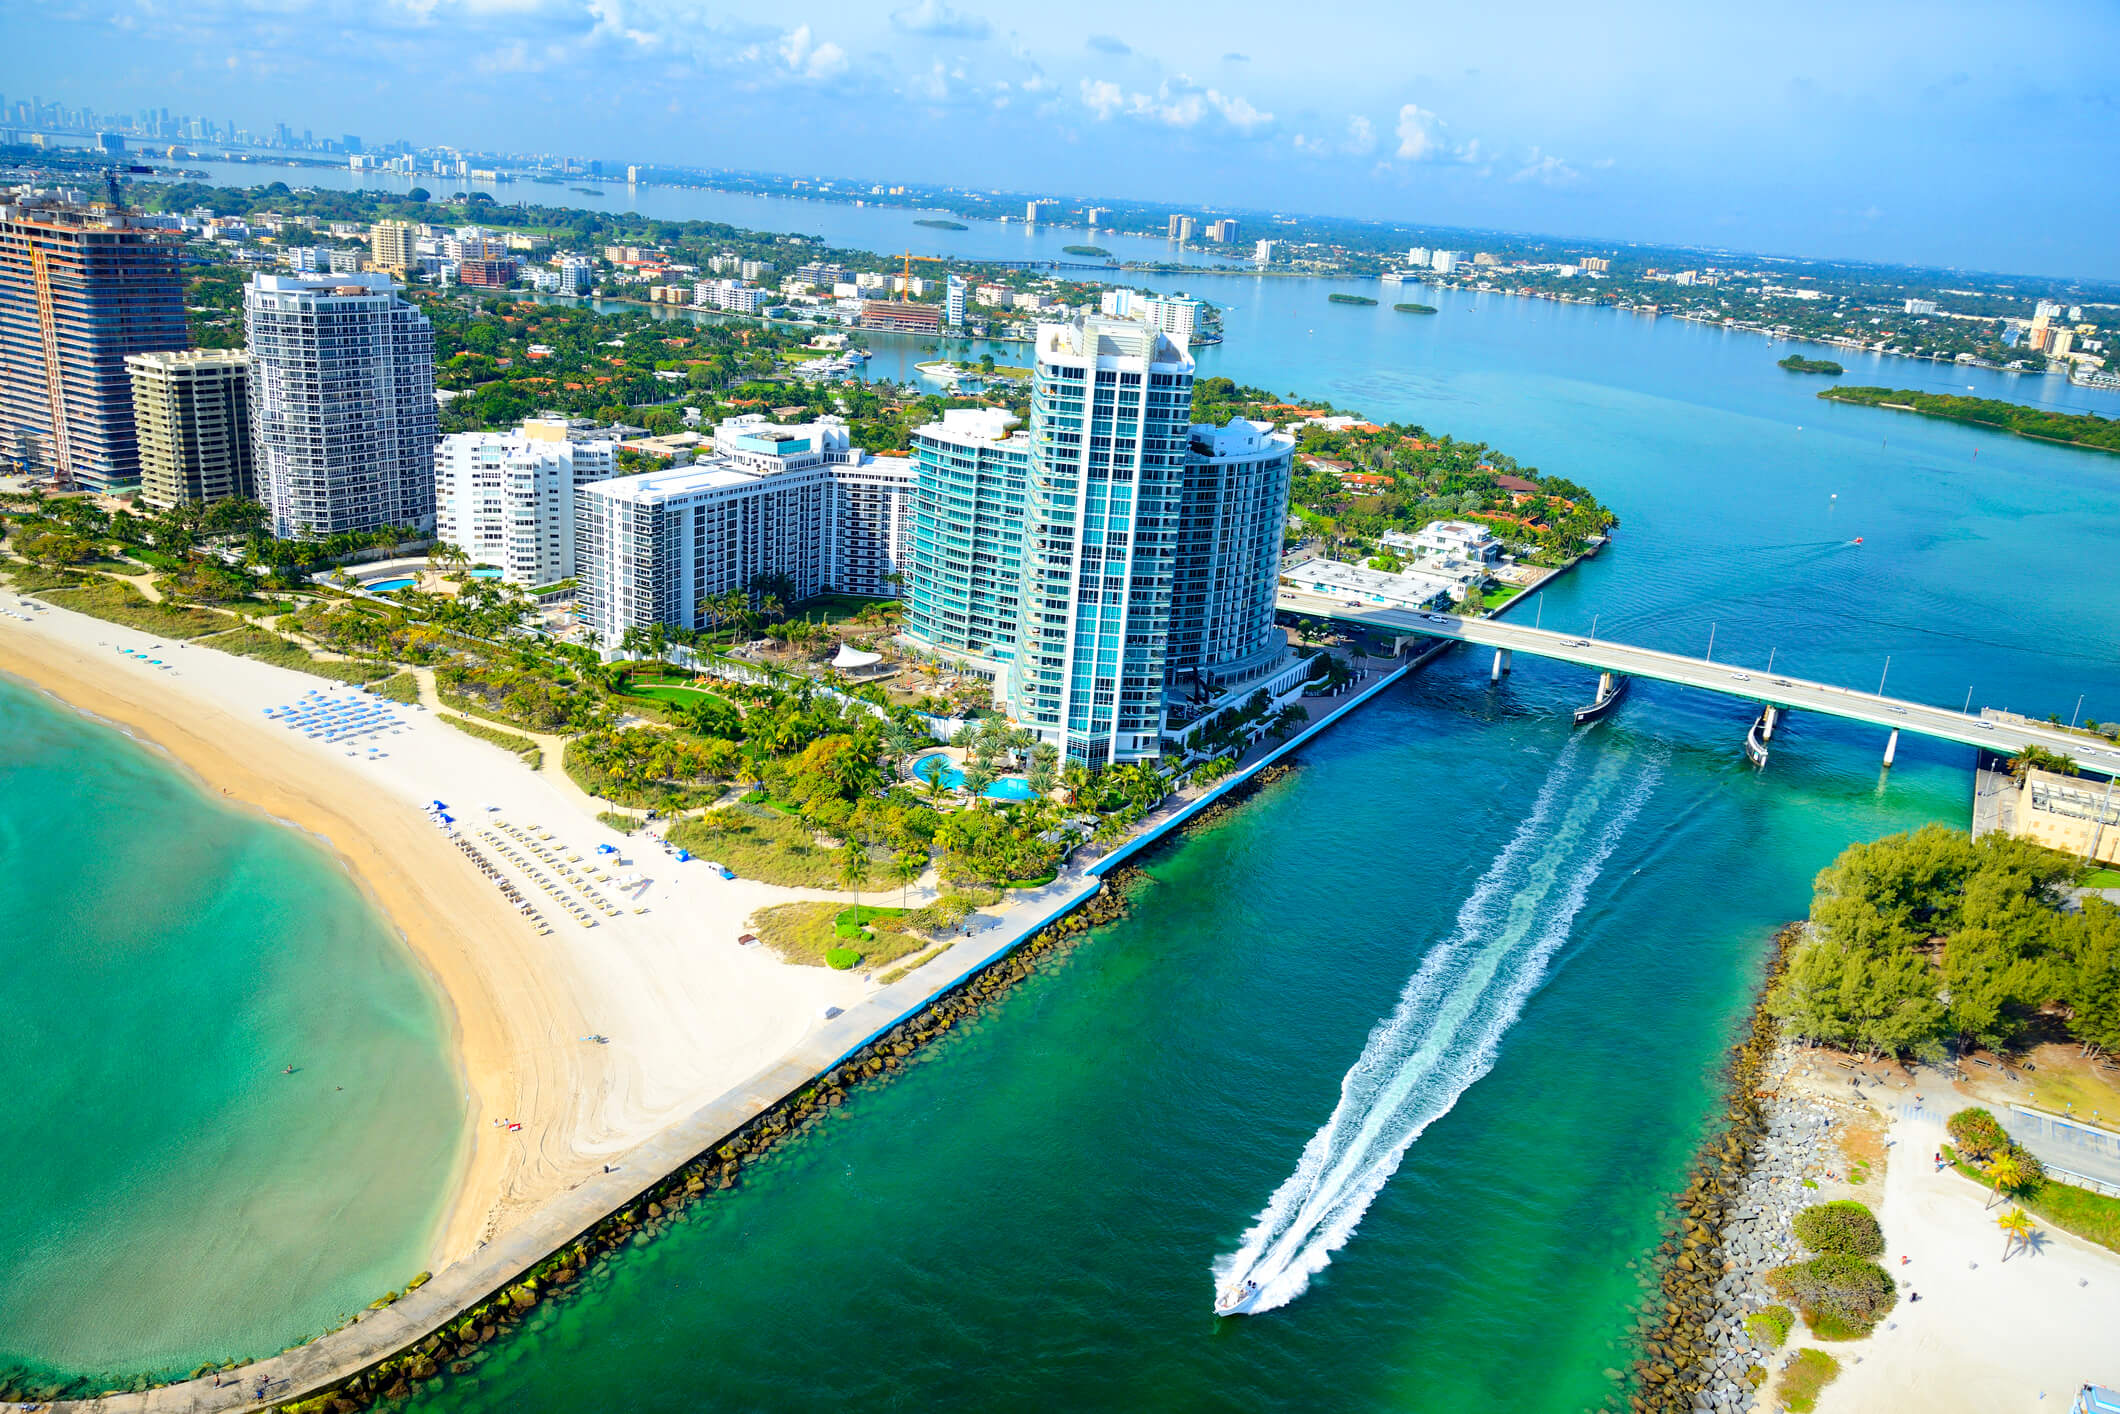 This is an aerial photo of miami beach which is also on of the locations that titleloansonline.com serves